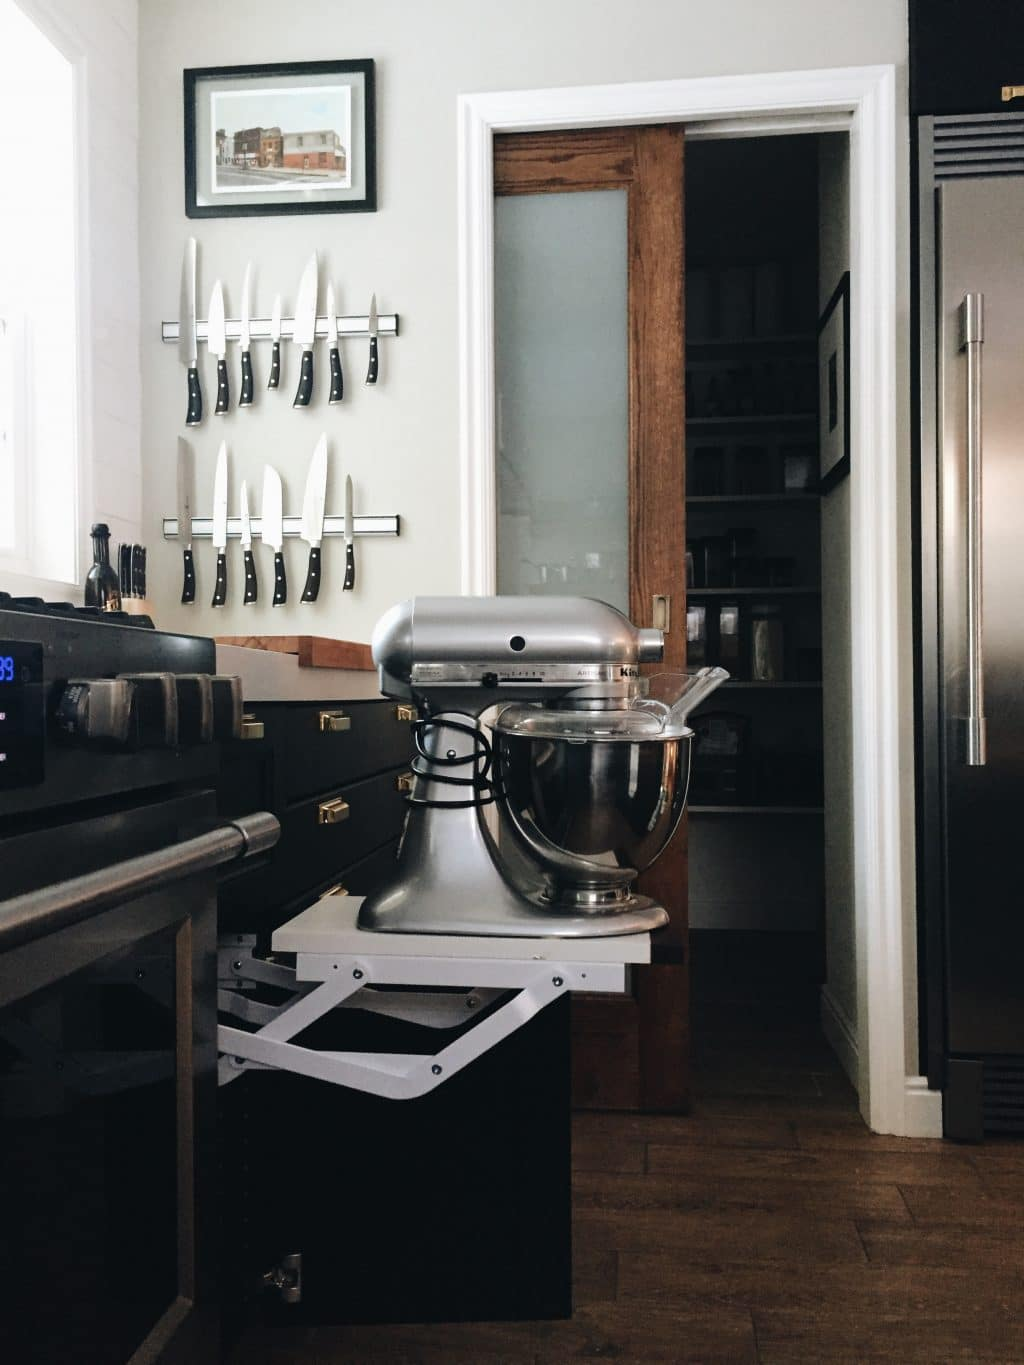 A Video Tour Inside Our Kitchen Cabinets - Chris s Julia on